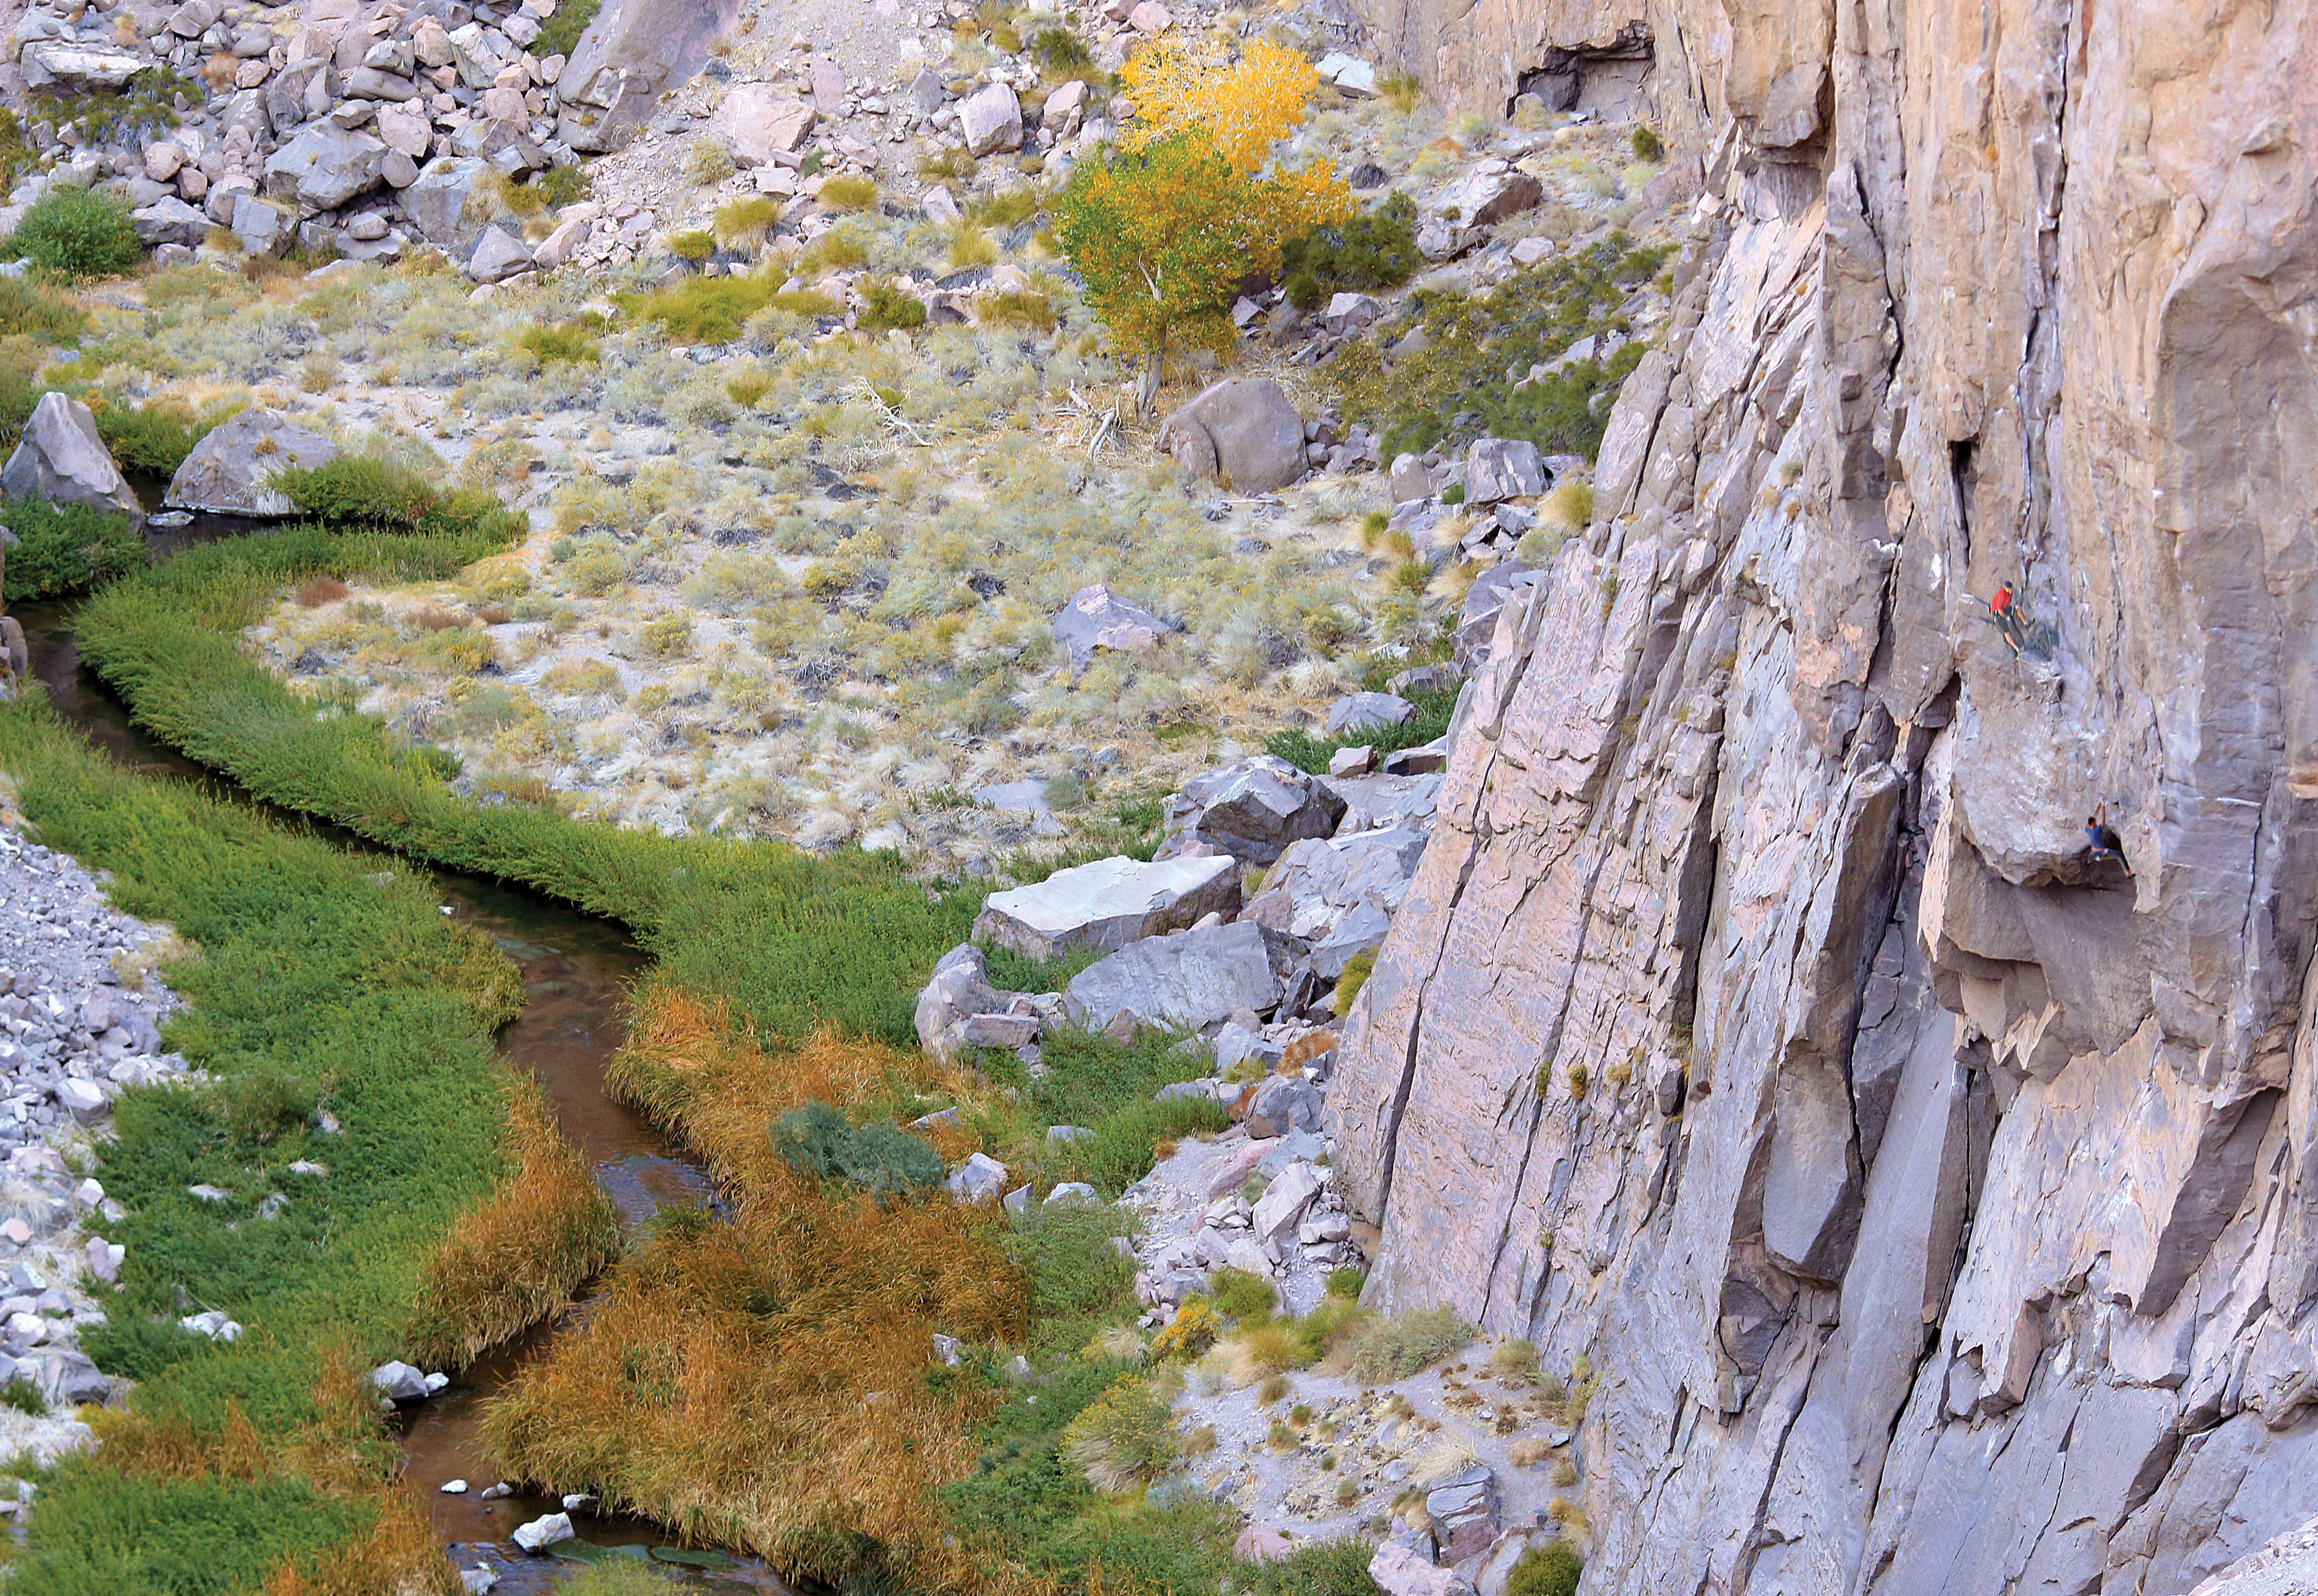 Climbers on the two-pitch Superfly (5.10c), put up in 1997. The Gorge has great climbing, but some routes have old—and possibly dangerous—hardware.